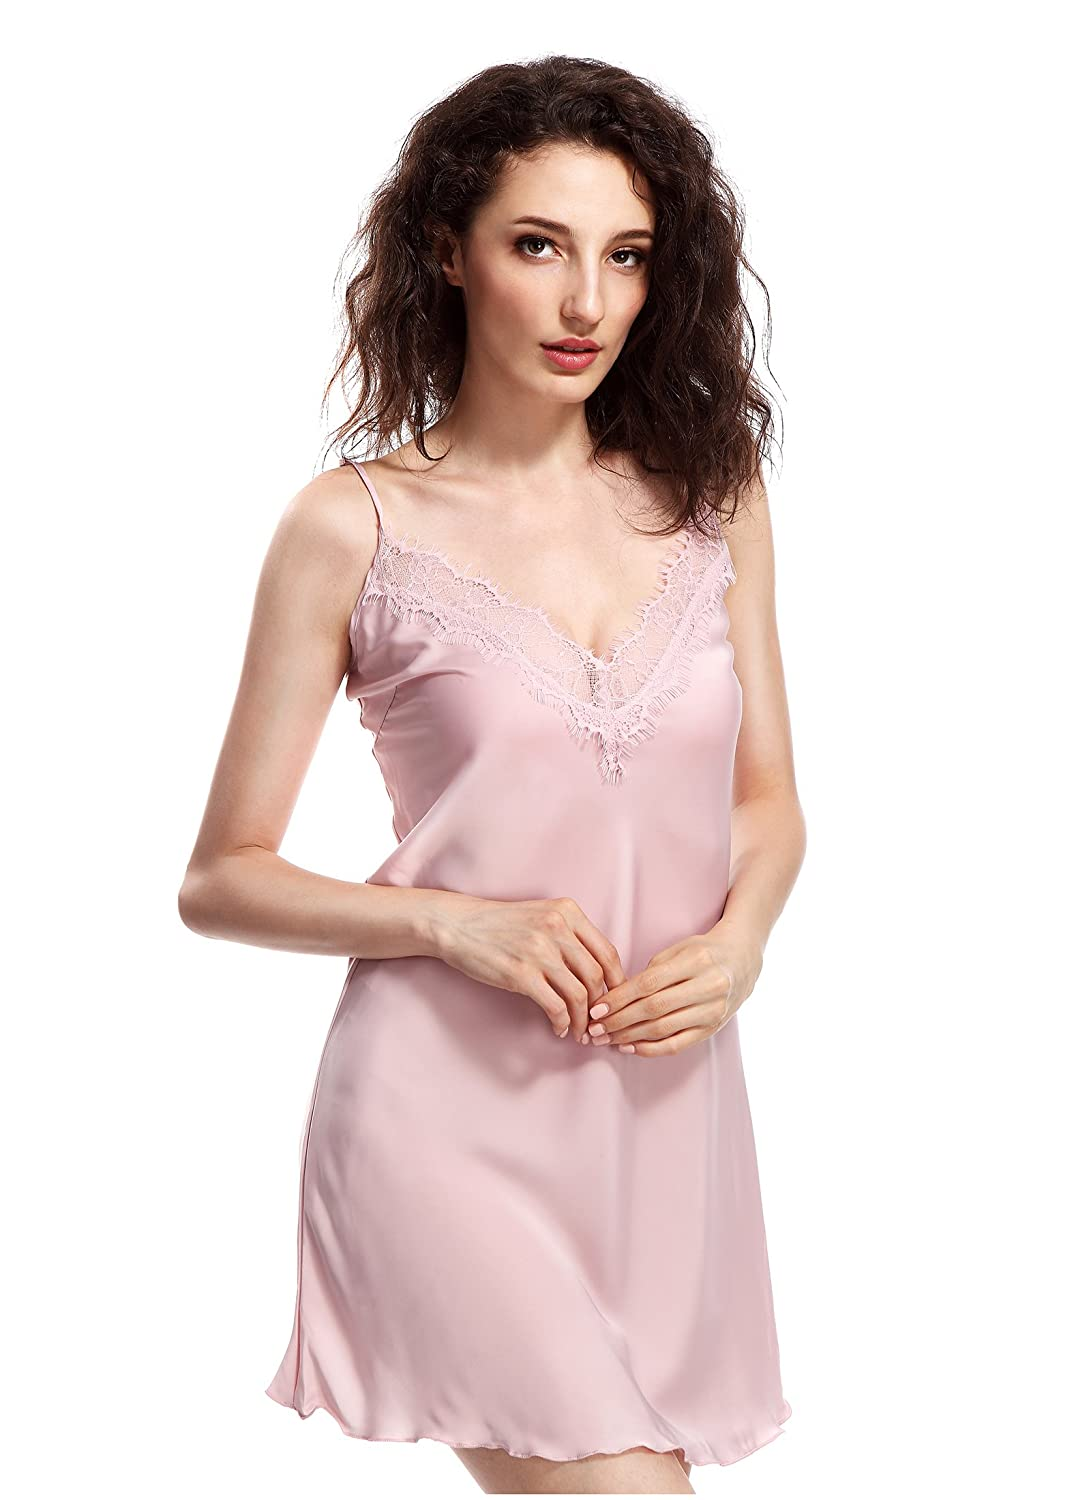 BellisMira Sexy Lace Satin Chemise Nightwear Full Slip Silk Sleepwear Padded/Unpadded Sleep Dress Silky Nightie Nightdress for Women